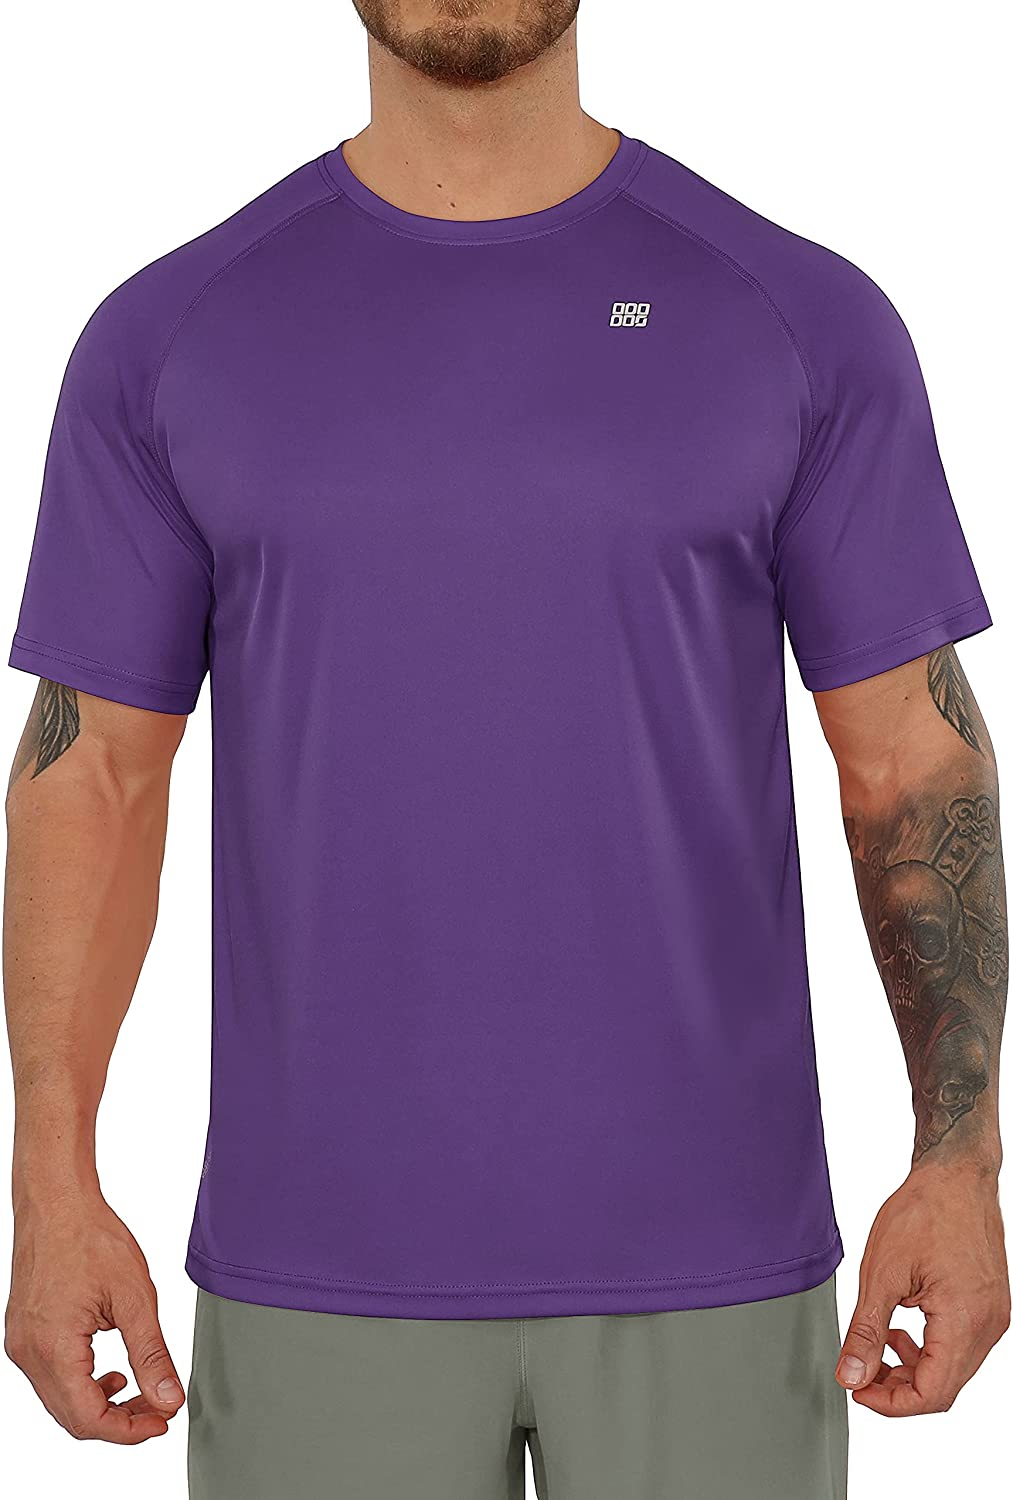 ODODOS Men's Classic Fit Long and Short Sleeve T-Shirts UPF 50+ Sun Protection SPF Athletic Tee Hiking Fishing Workout Tops